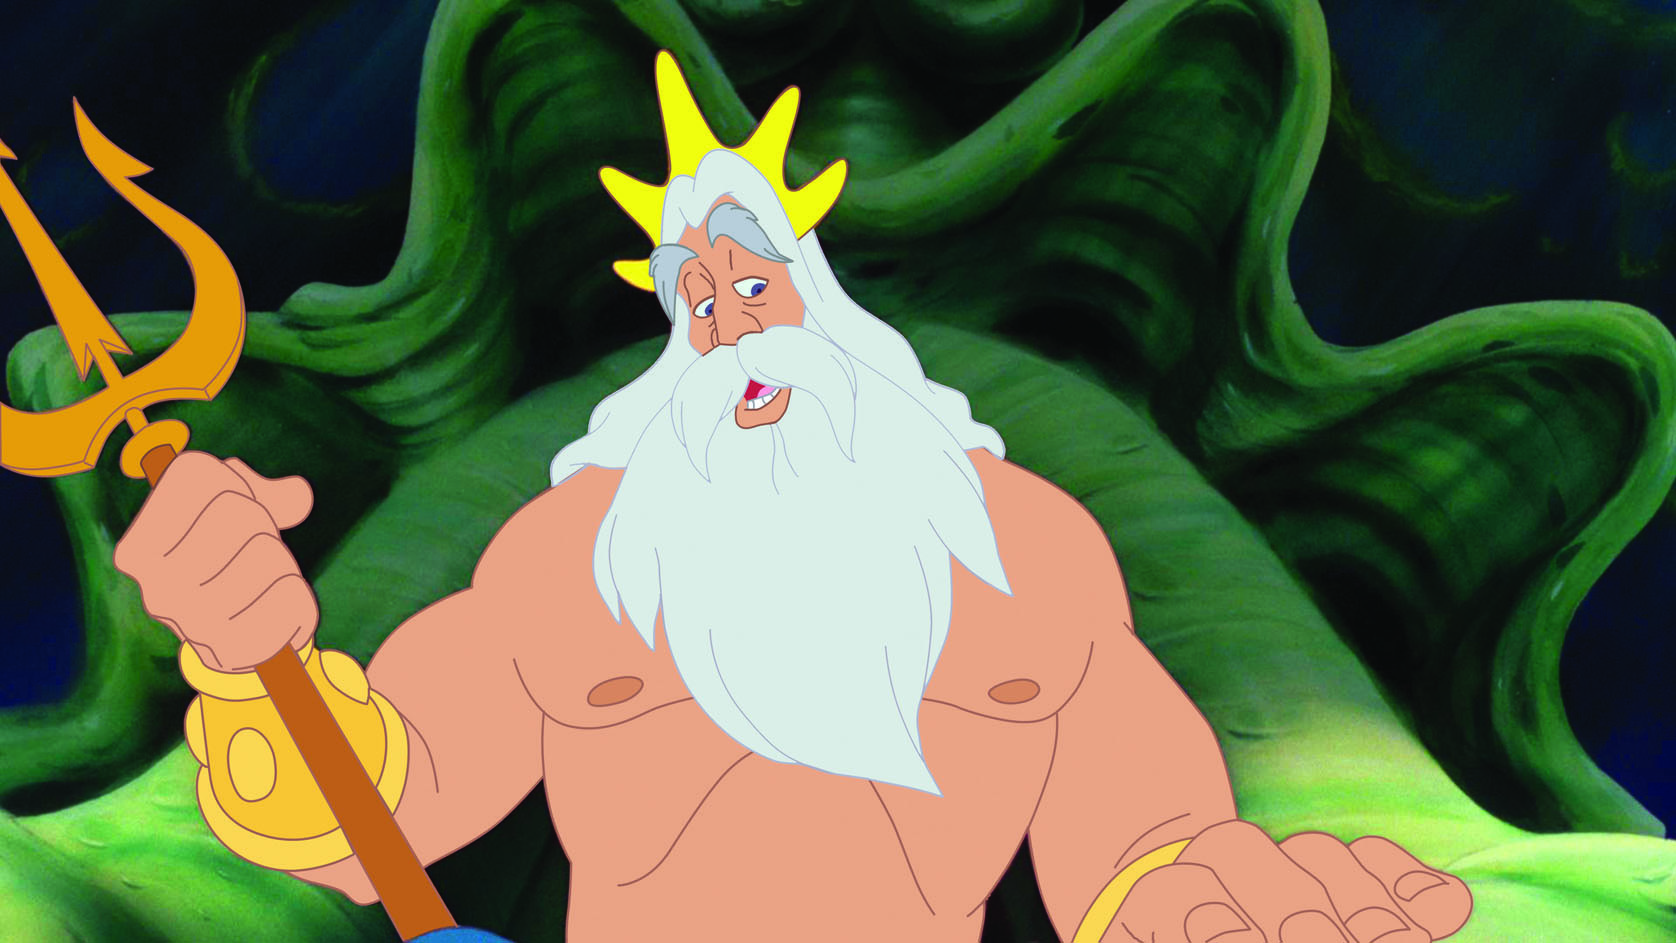 Kenneth Mars in The Little Mermaid (1989)